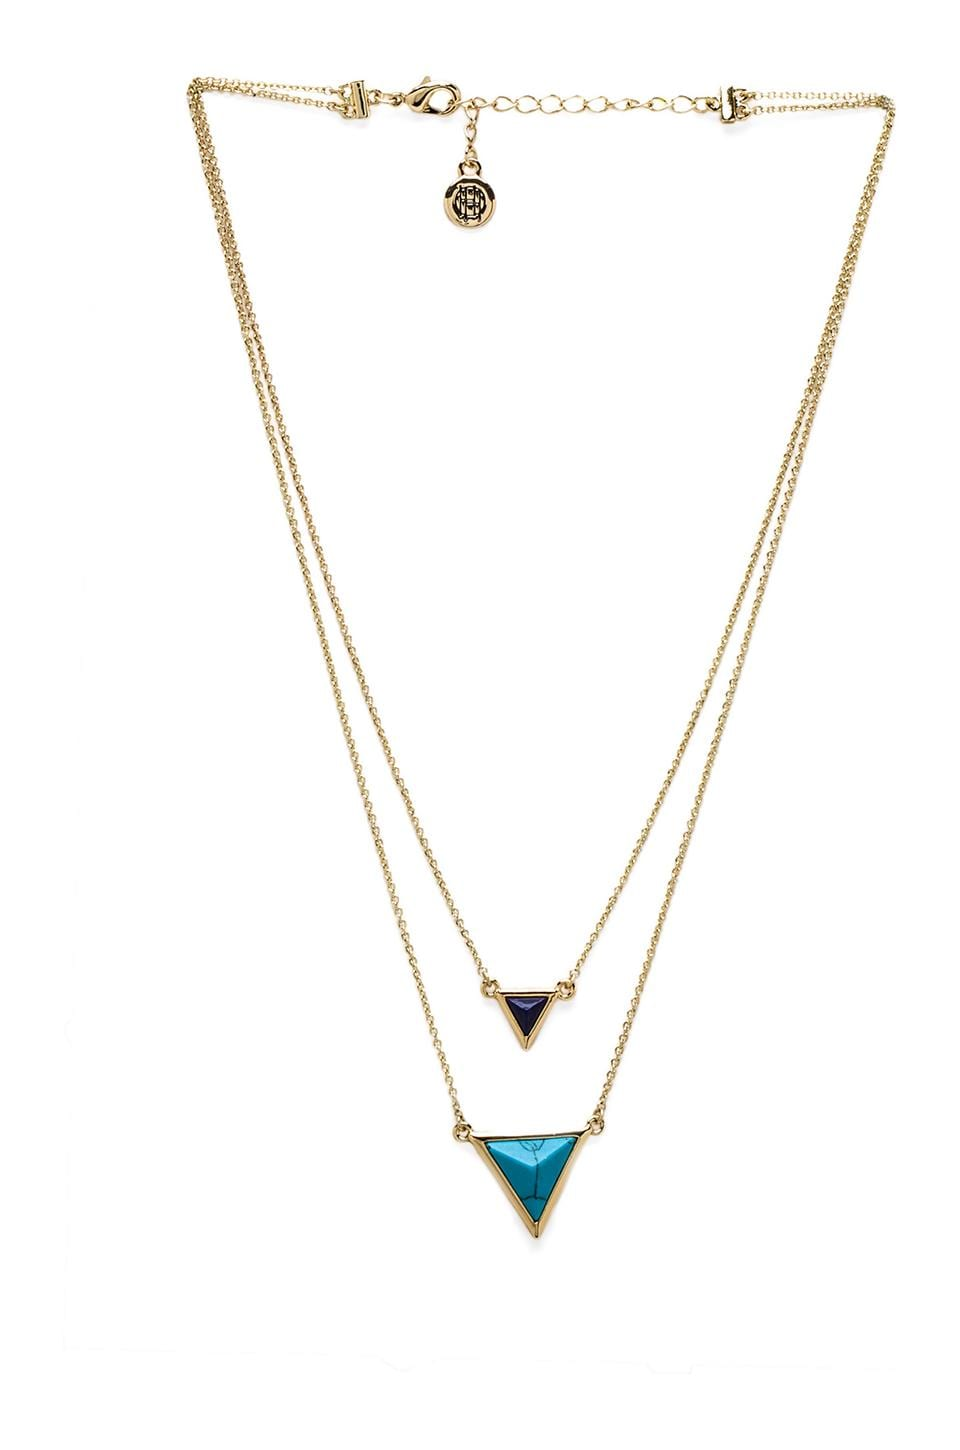 House of Harlow 1960 House of Harlow The Temple Necklace in Gold/Turquoise